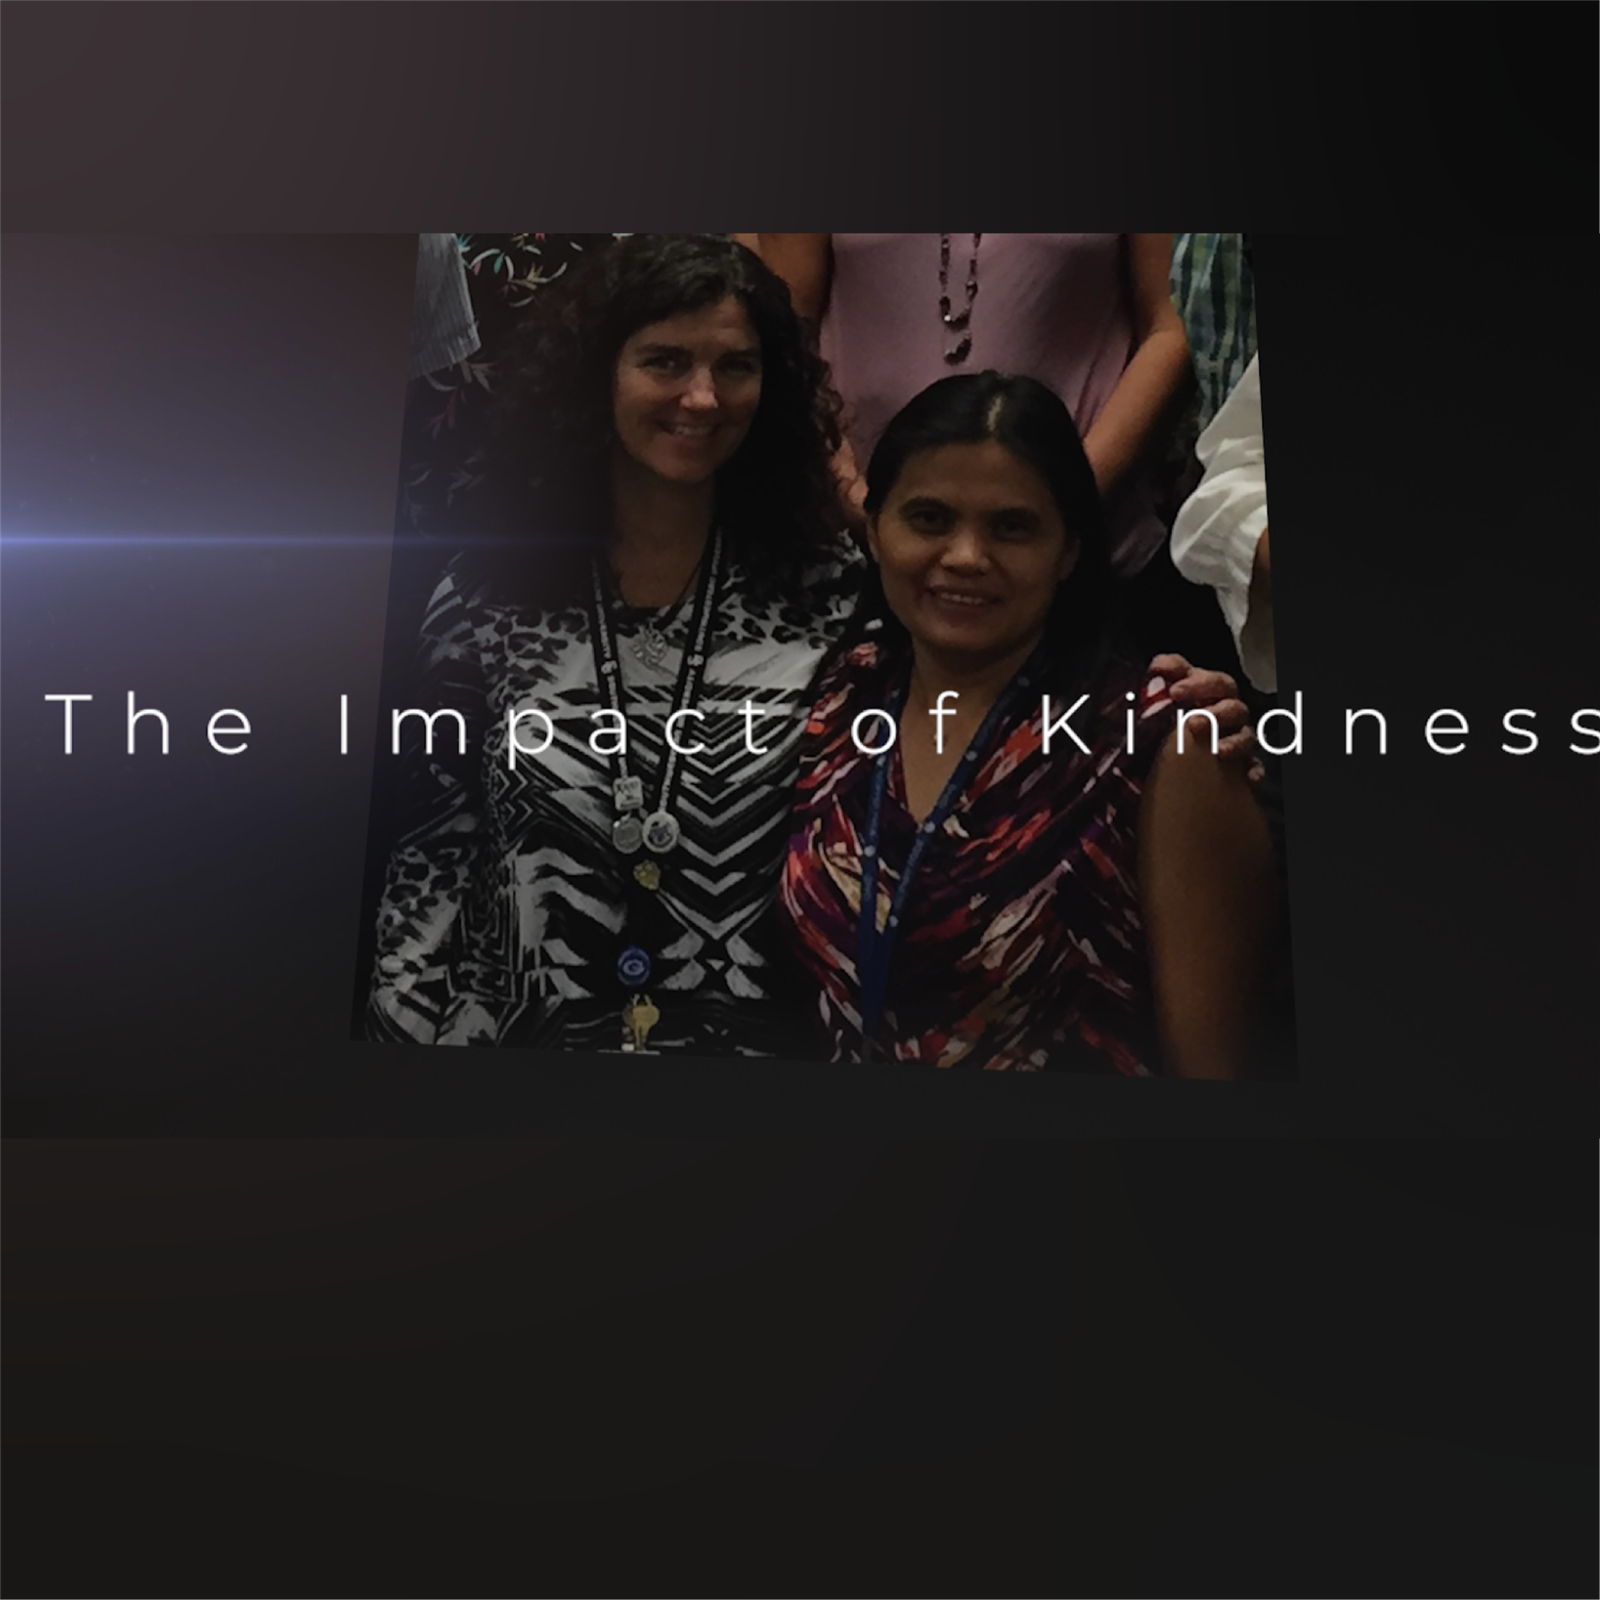 The Impact of Kindness